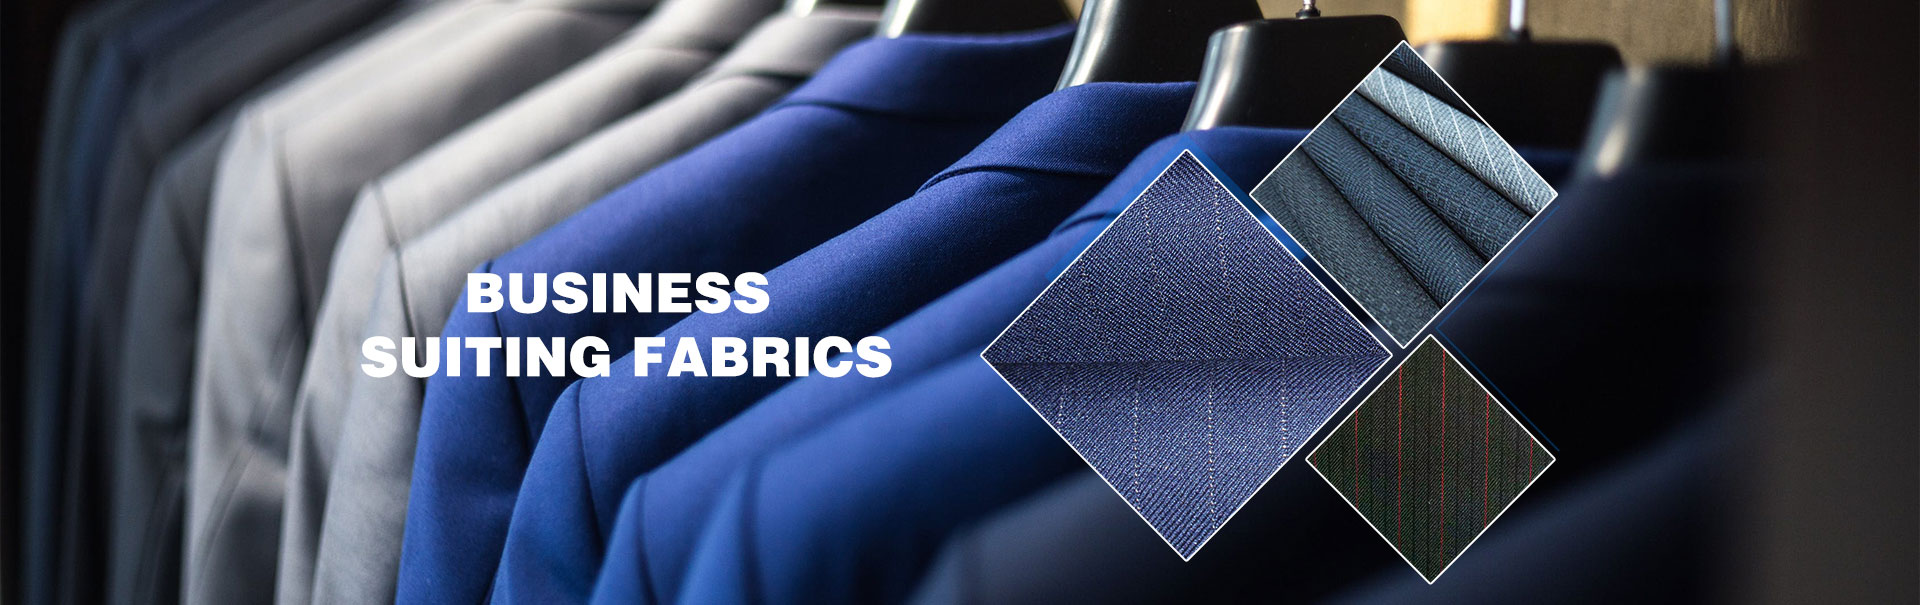 Business Suiting Fabrics Chinese Supplier